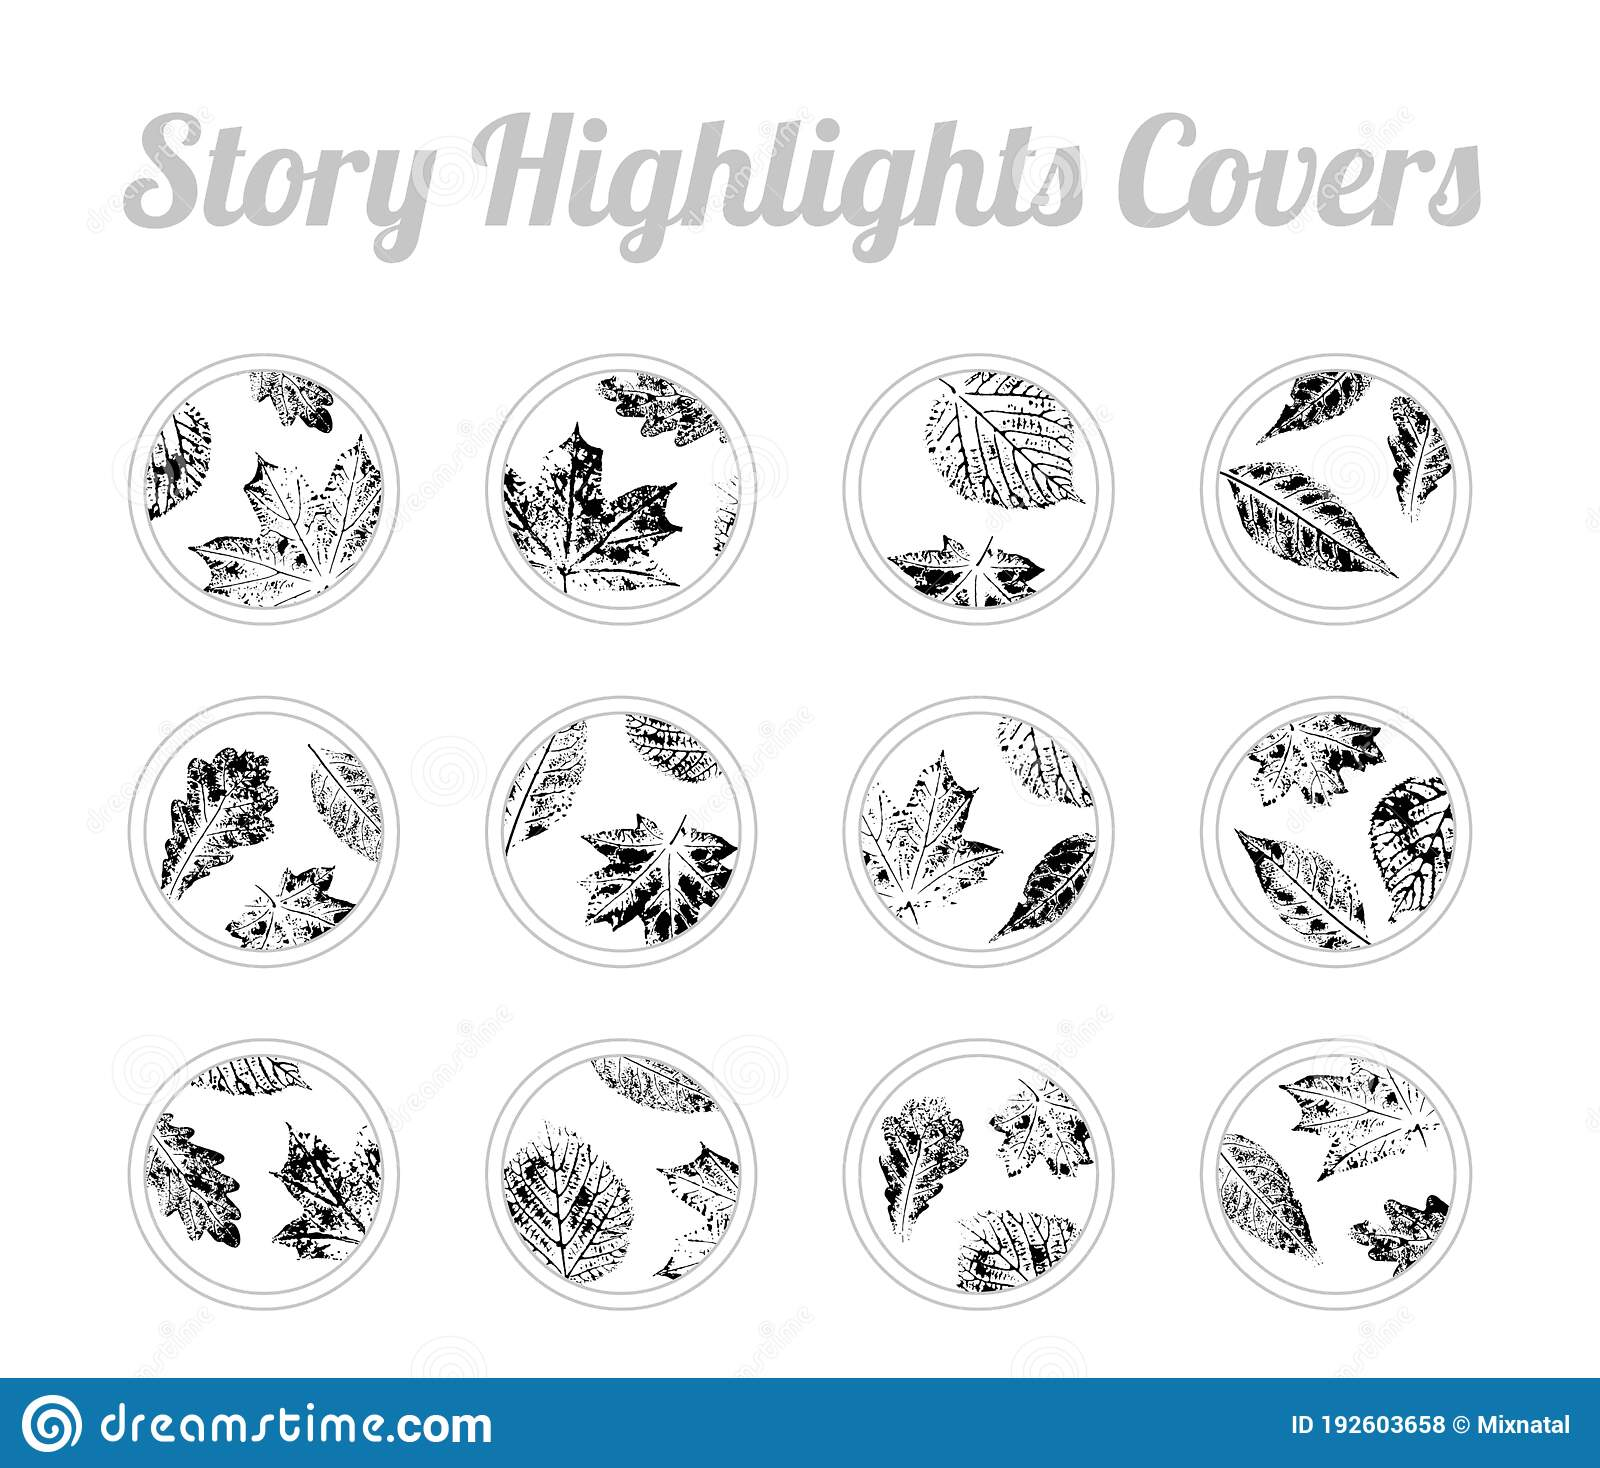 Set Of Story Highlights Covers Icons Set Of Autumn Leaves Imprints Black And White Design For Fall Season Bundle Of Templates F Stock Vector Illustration Of Forest Birch 192603658